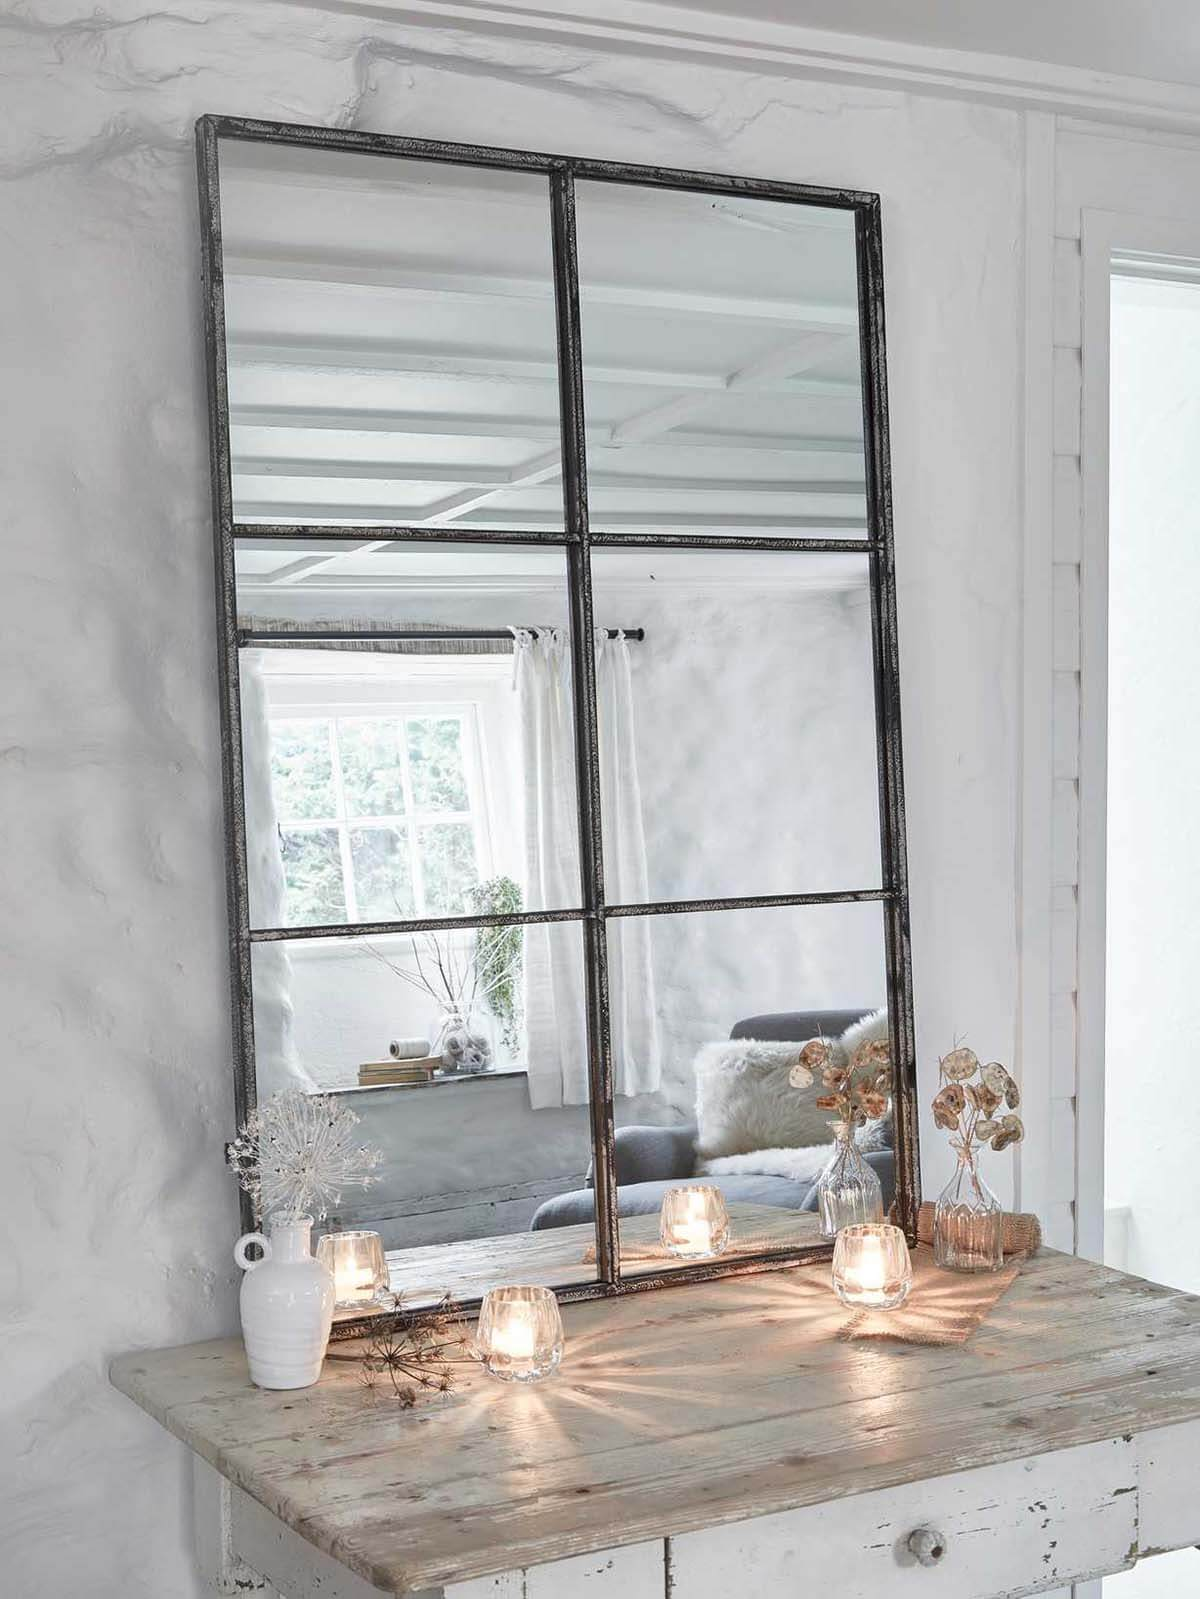 Timeless, Industrial Loft-Style Window Mirror